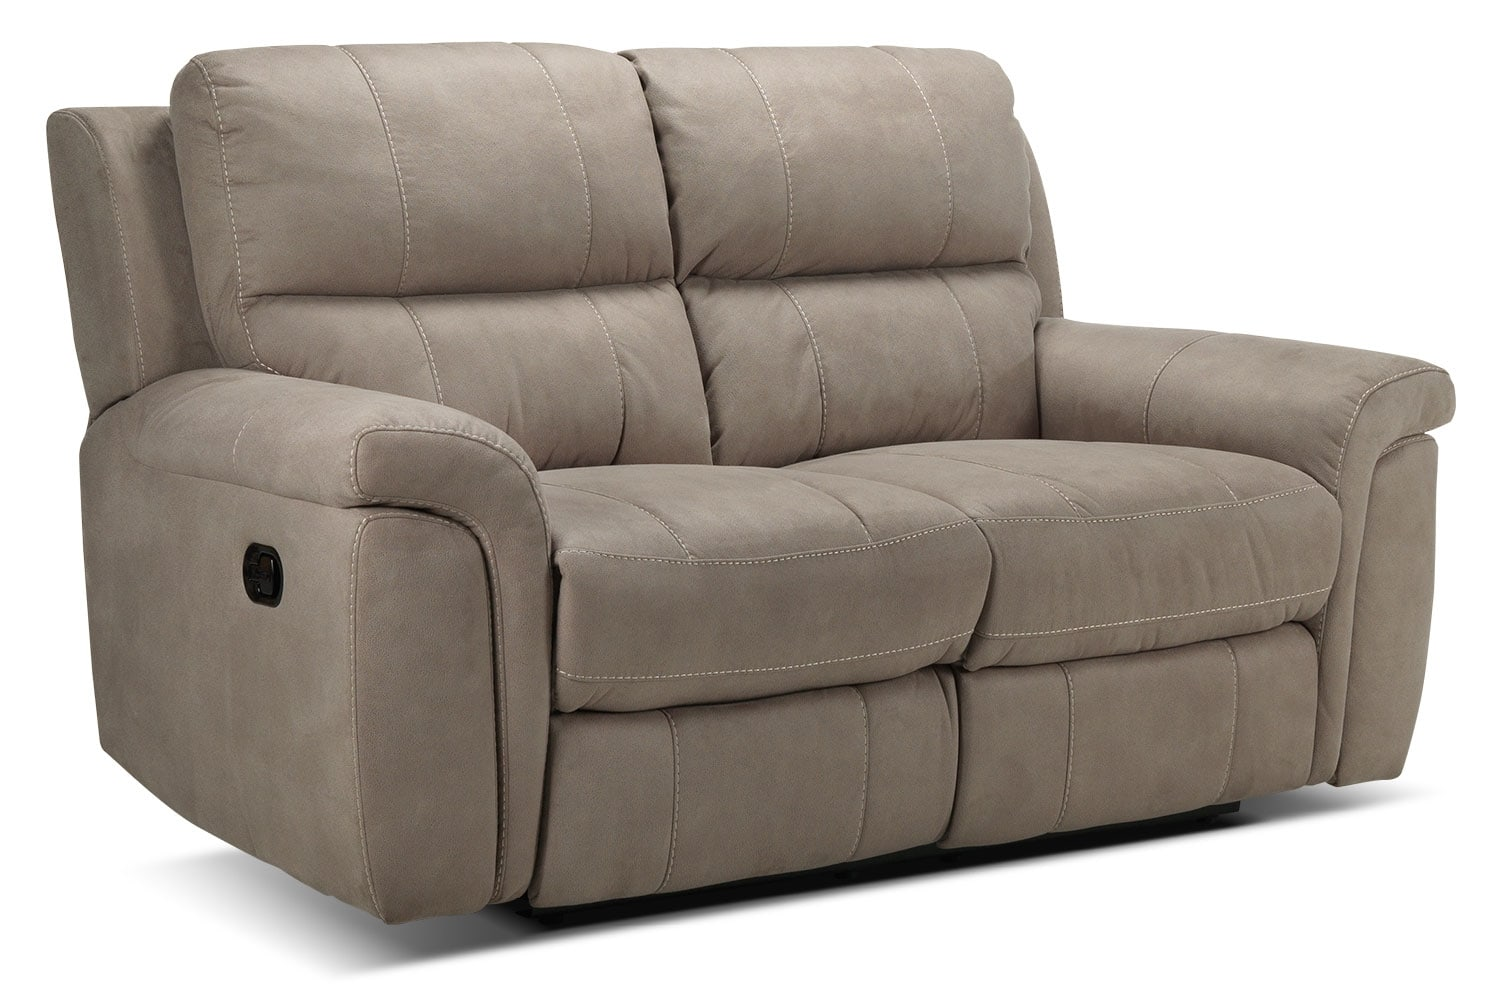 Living Room Furniture - Roarke Reclining Loveseat - Silver Grey